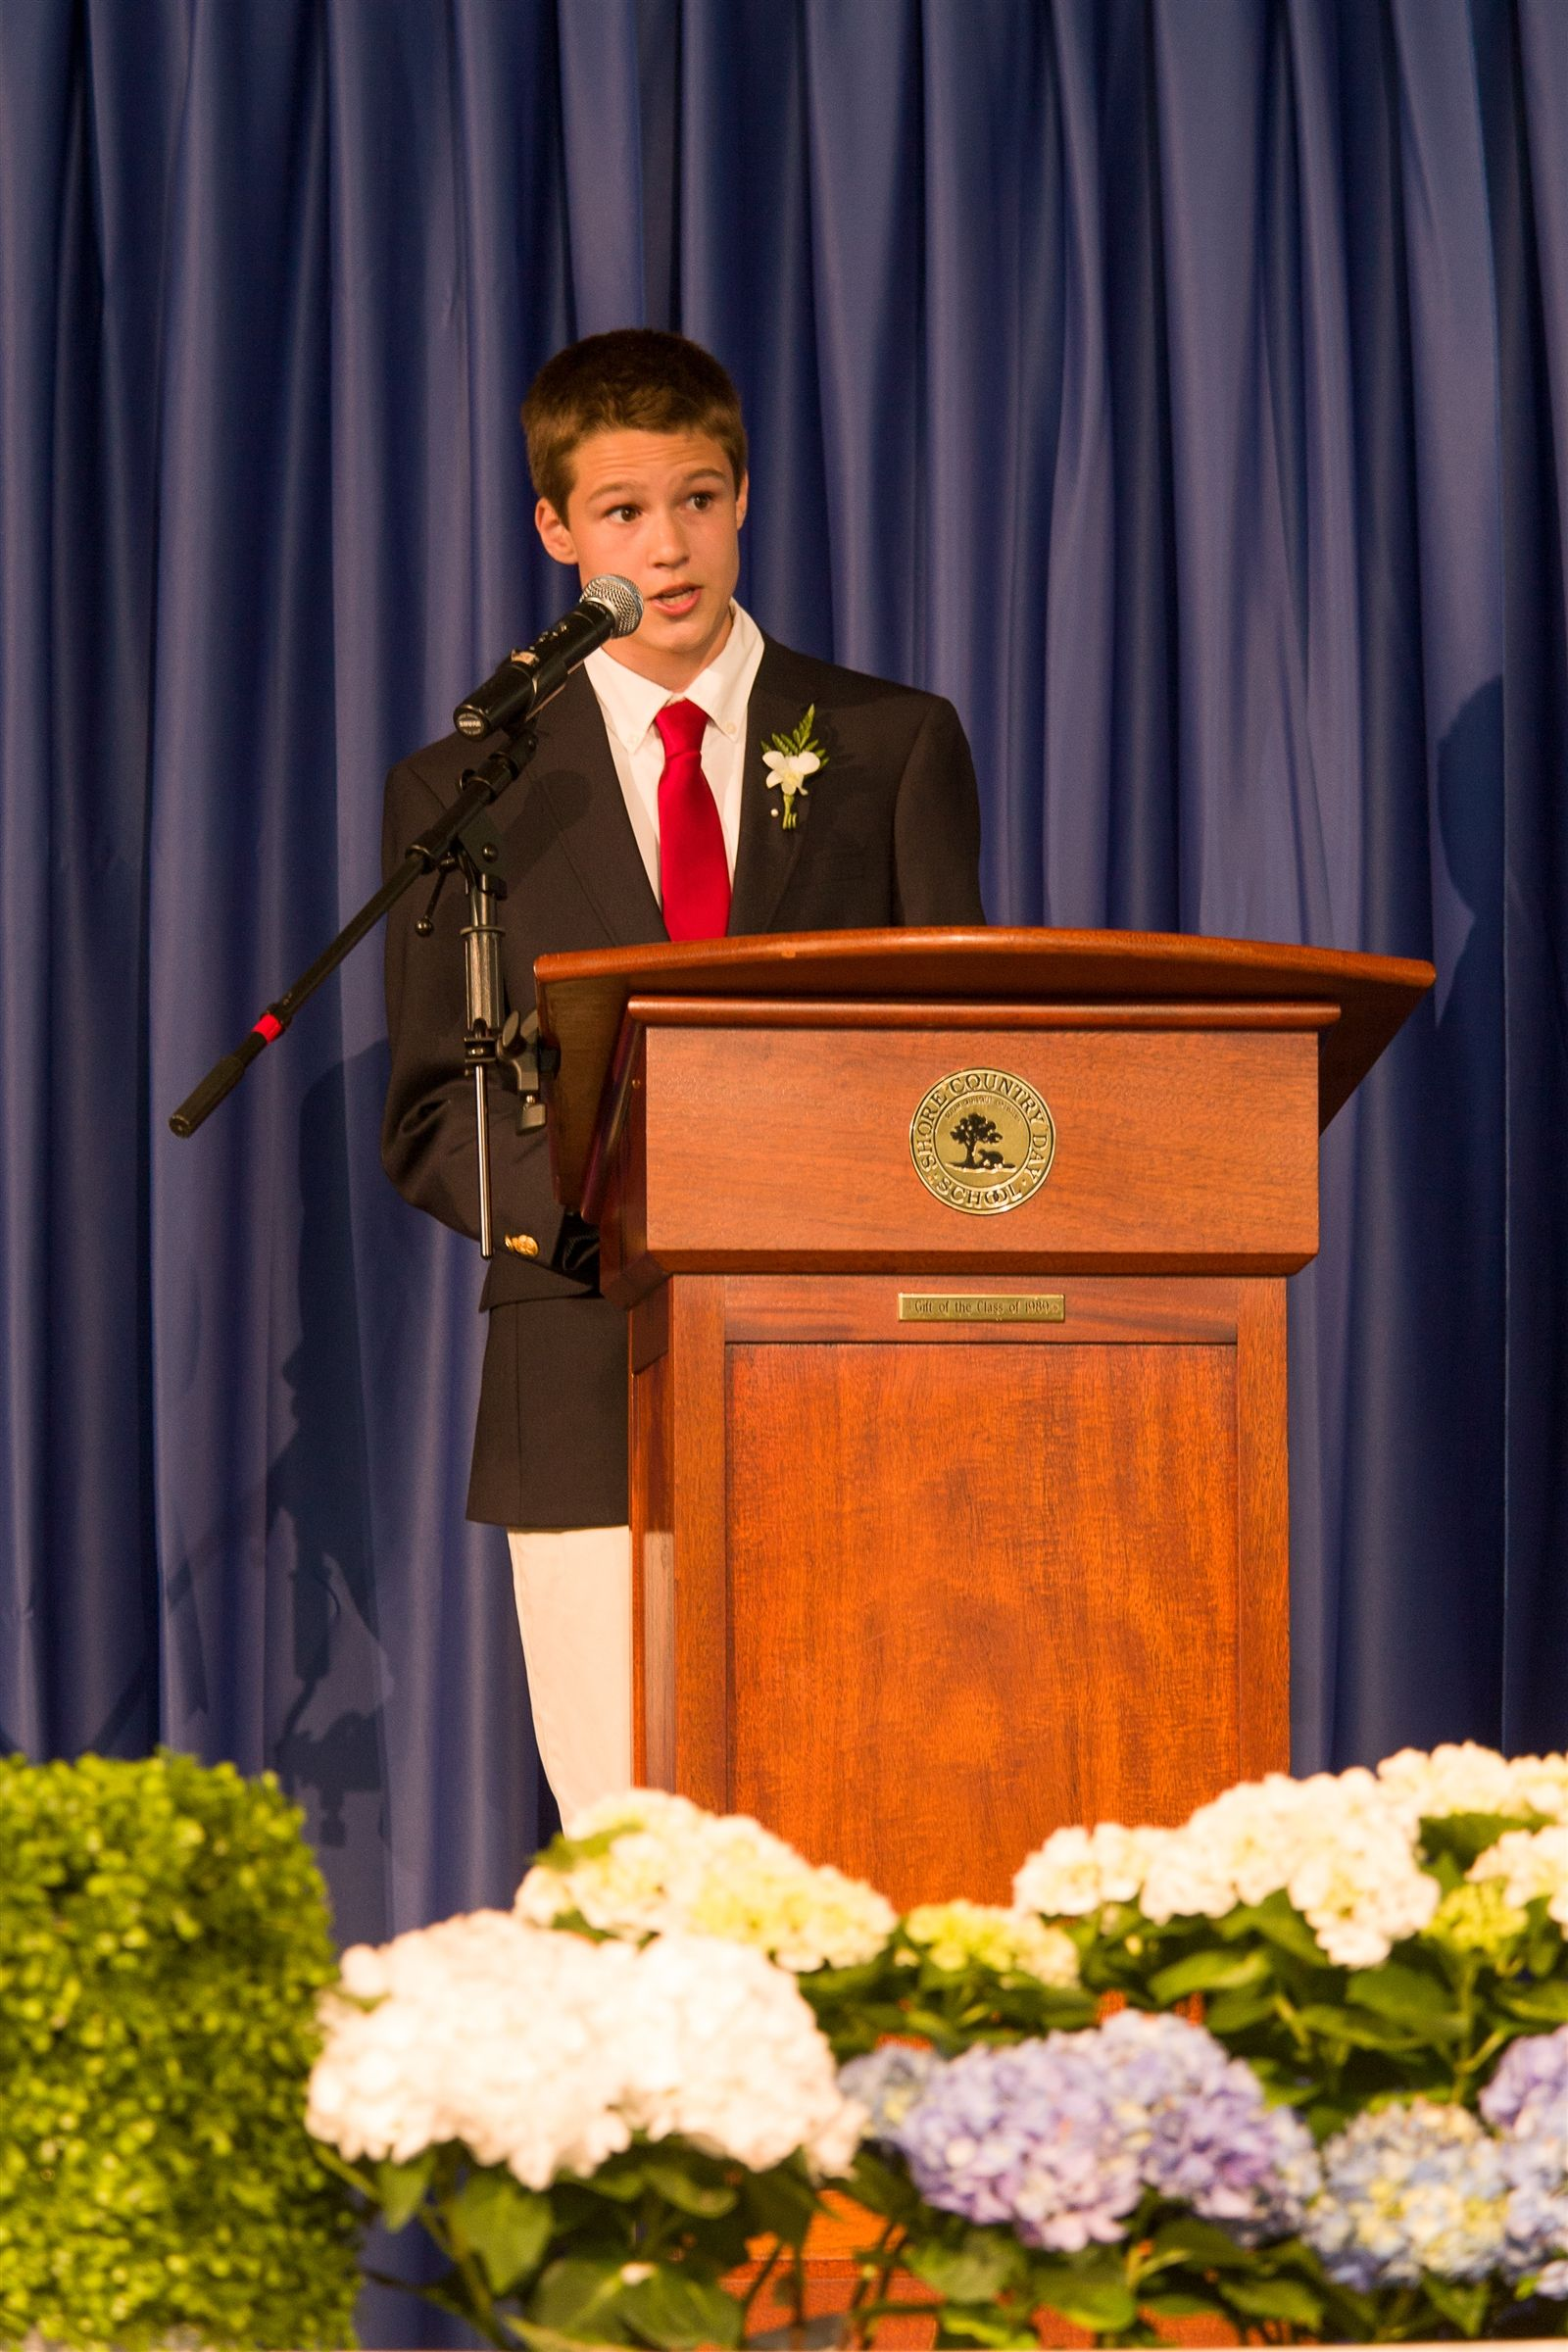 Ninth grader Nikko Dominaitis eloquently delivered his remarks to his fellow graduates, faculty and staff, and guests in attendance for Shore